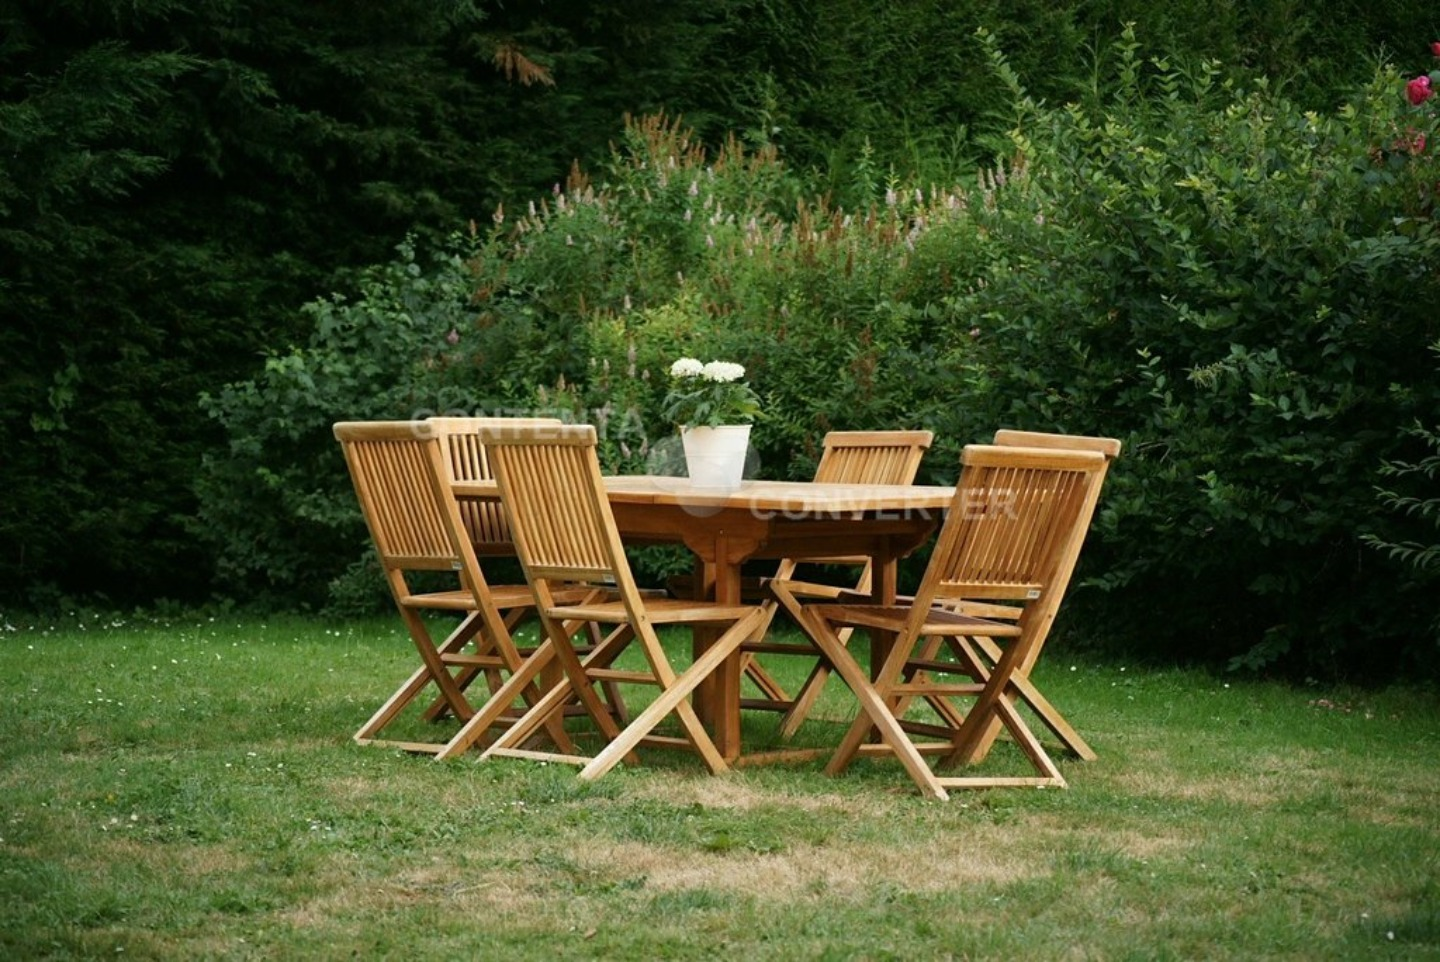 A couple of lawn chairs sitting on top of a wooden chair at Le gite du Tau.